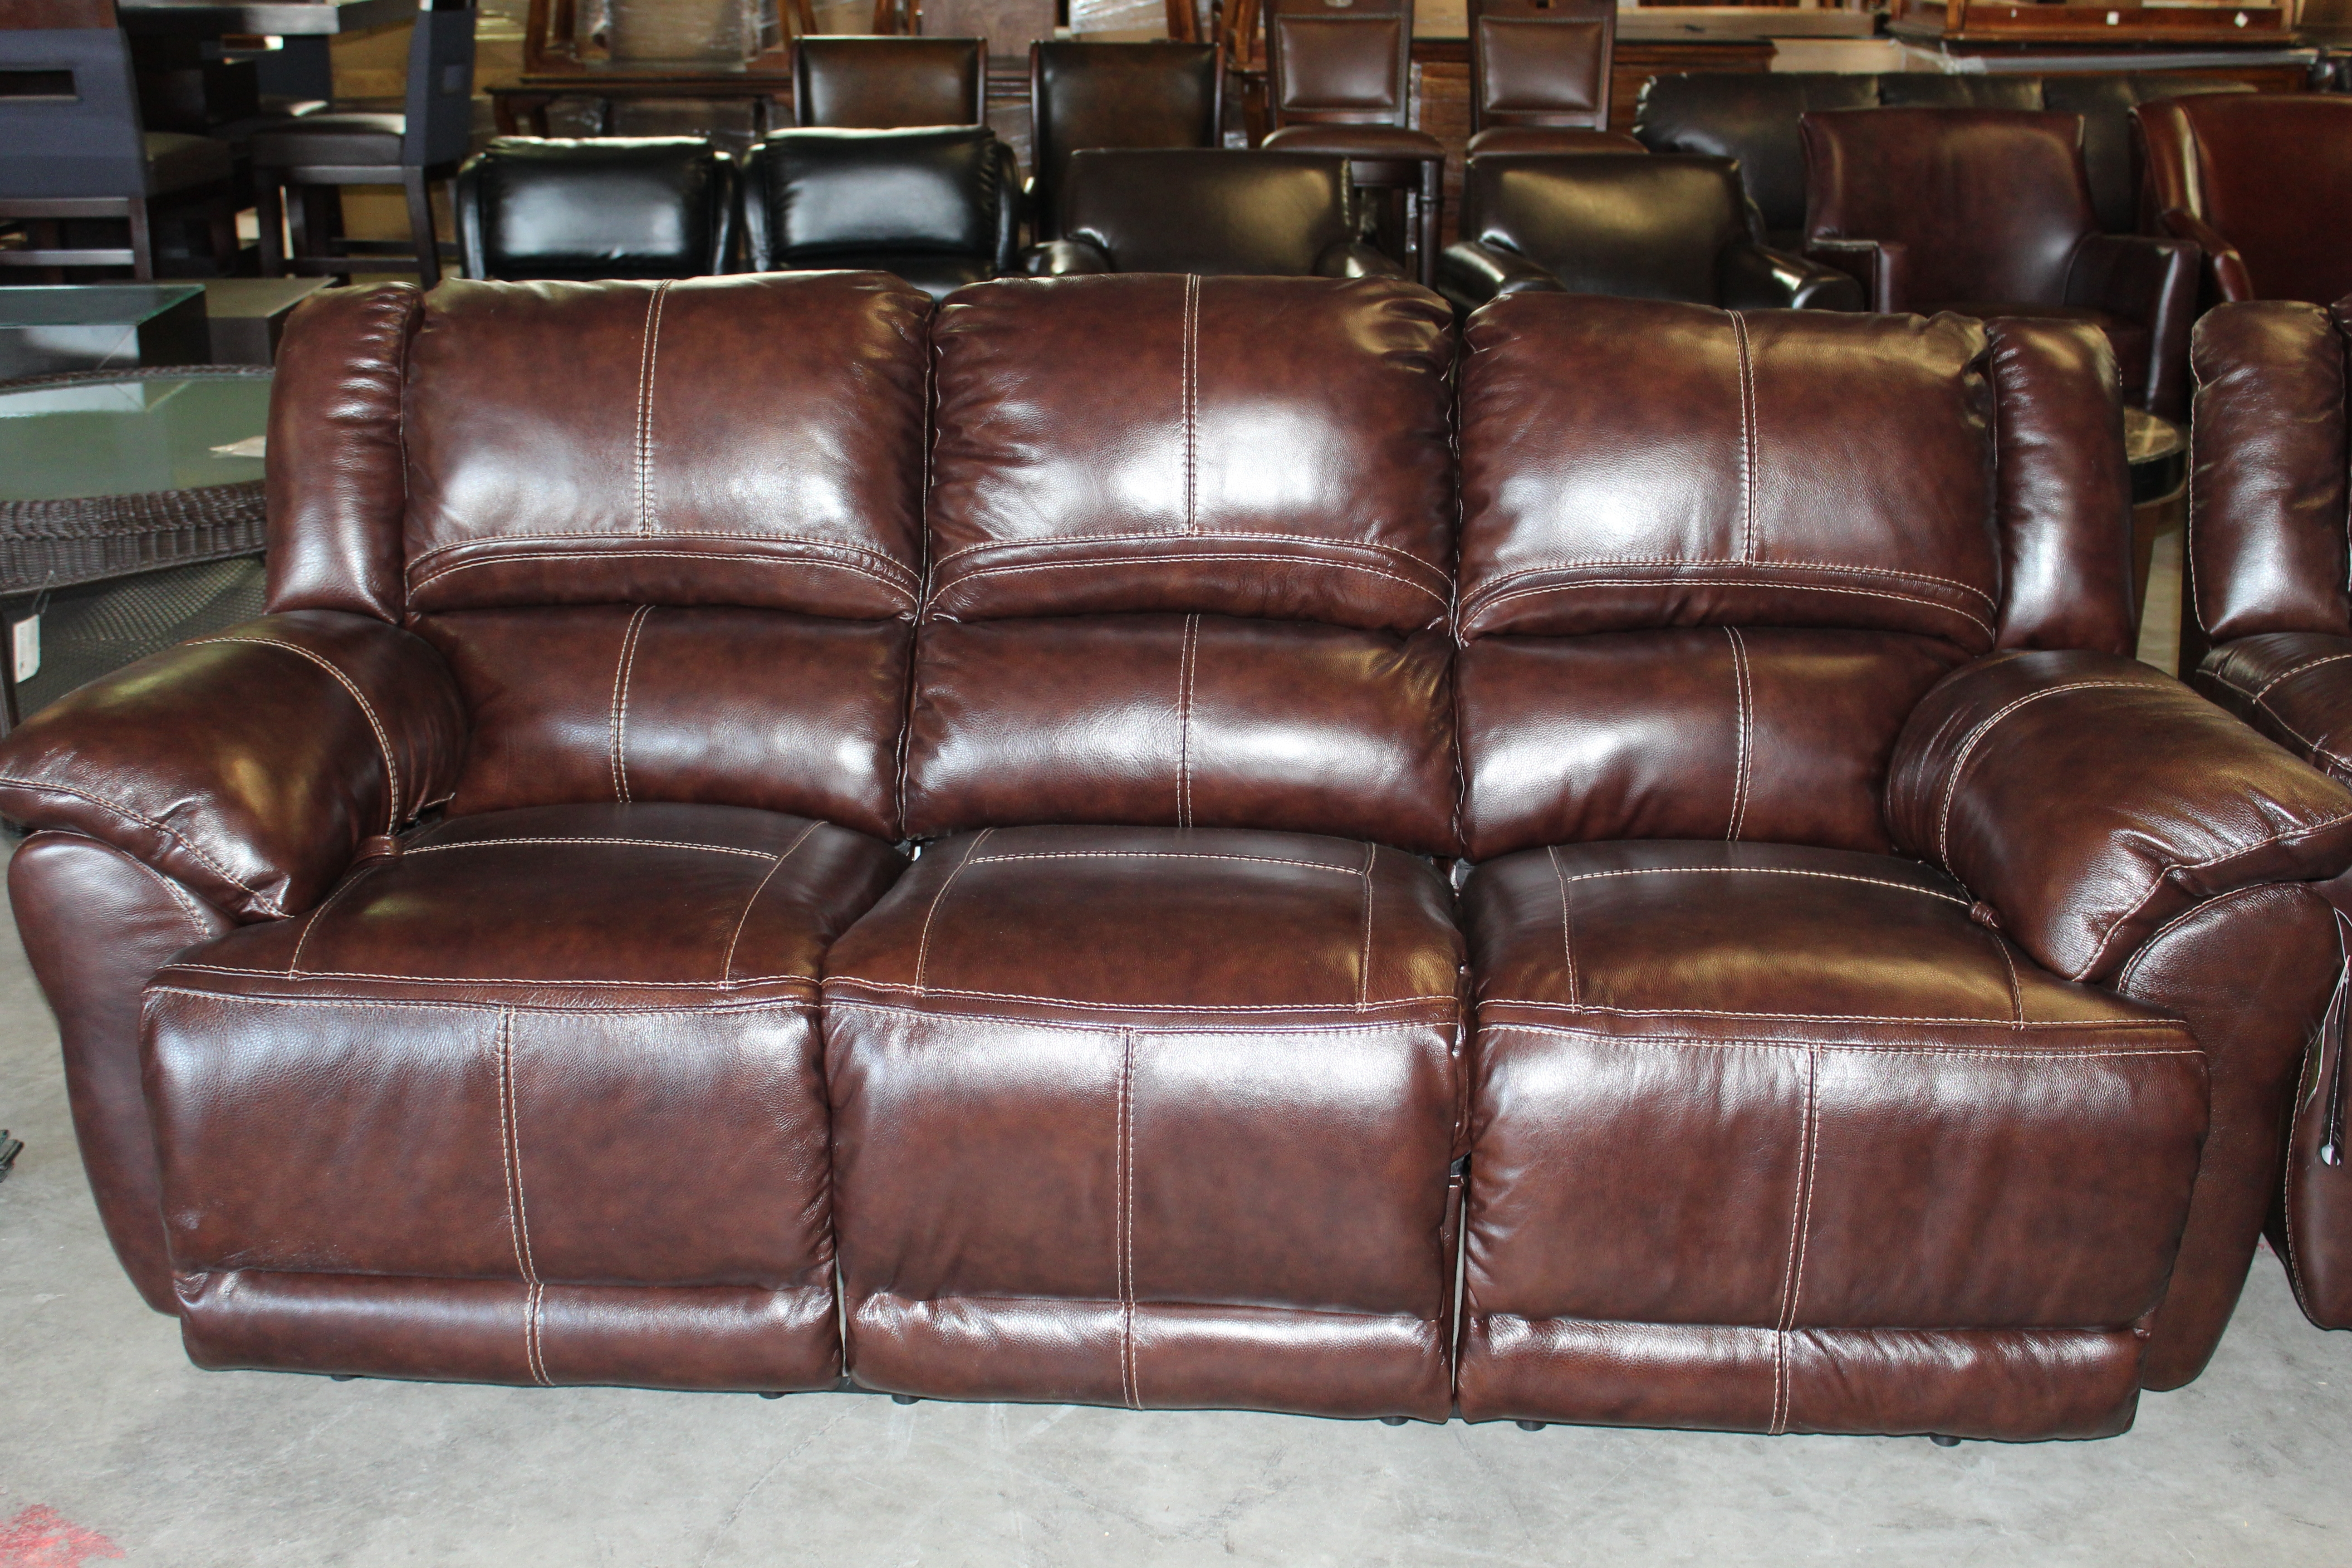 Used Furniture With Regard To Popular Leather Lounge Sofas (Gallery 8 of 20)